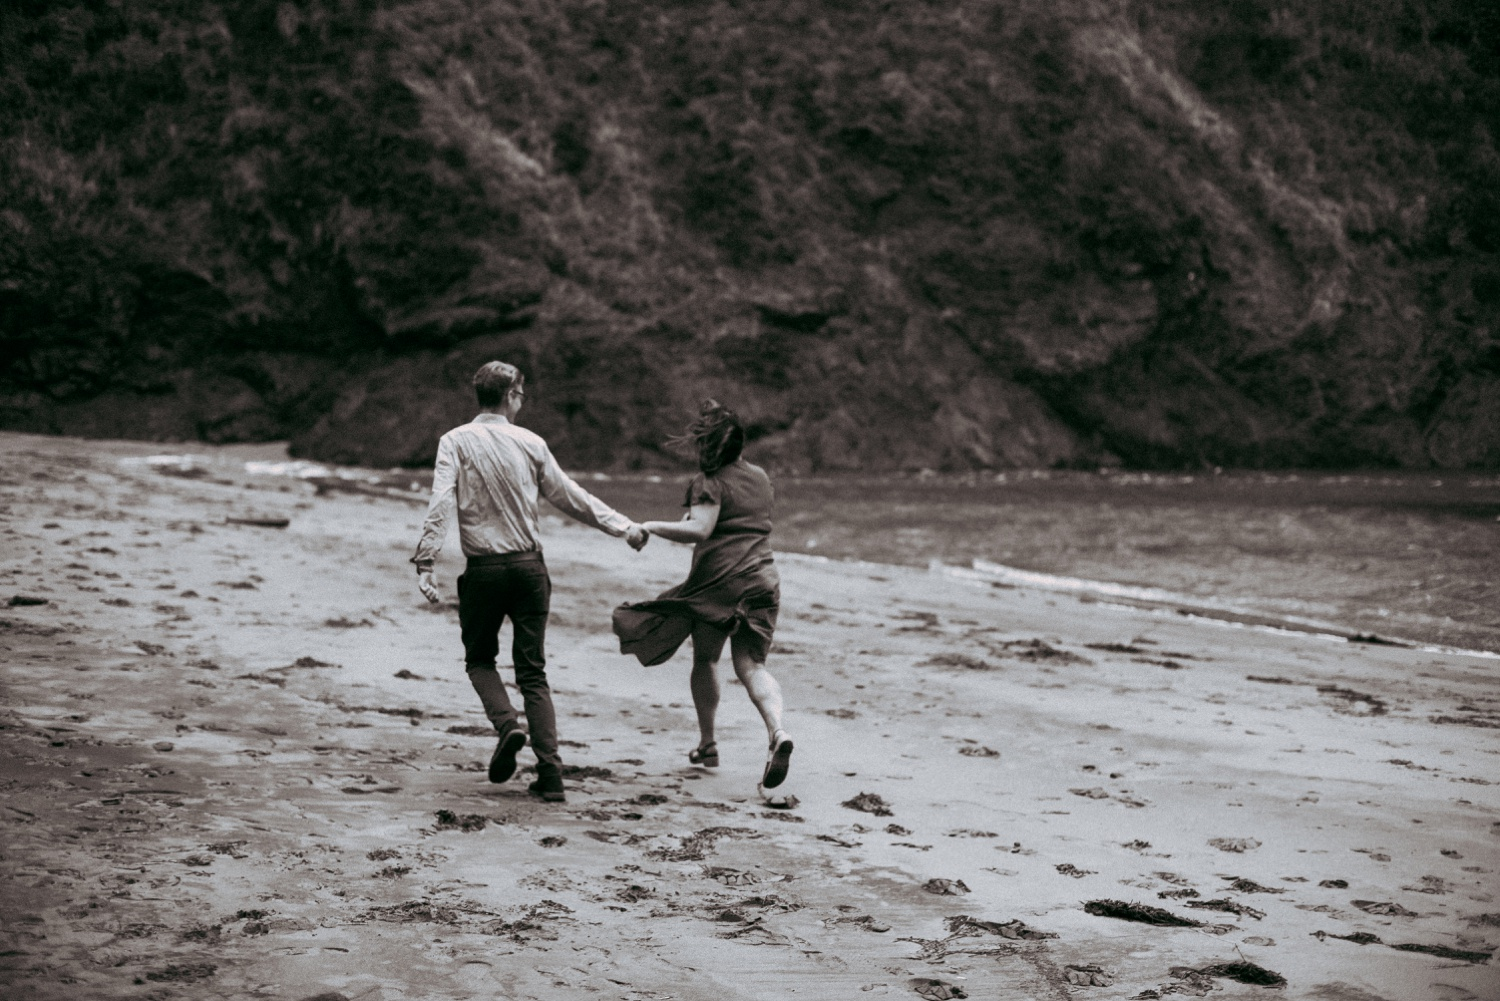 Cape_Disappointment_Engagment_Kailey_Alex_The_Foxes_Photography_065-2.jpg